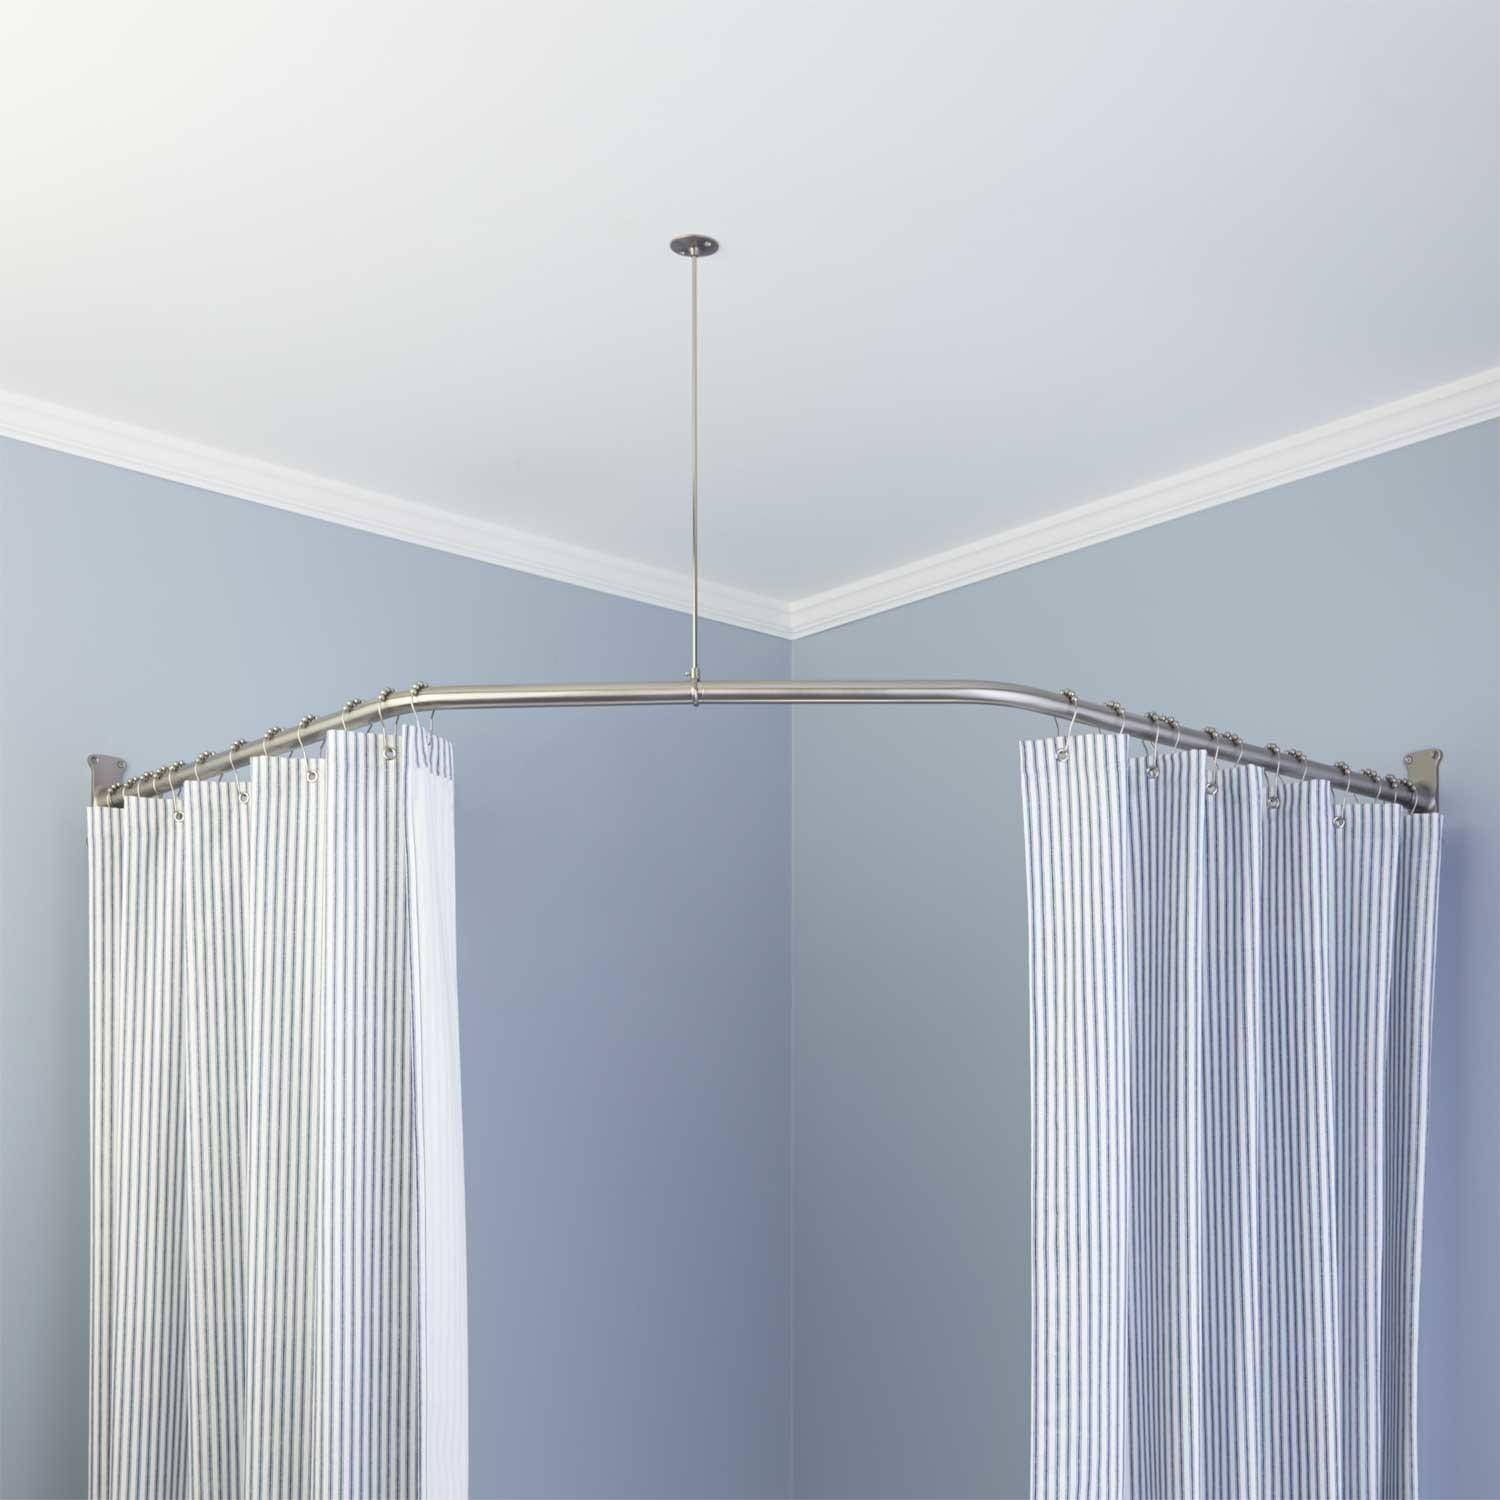 Ceiling Mount Circular Shower Curtain Rod.Ceiling Mounted Circular Shower Curtain Rail Shower